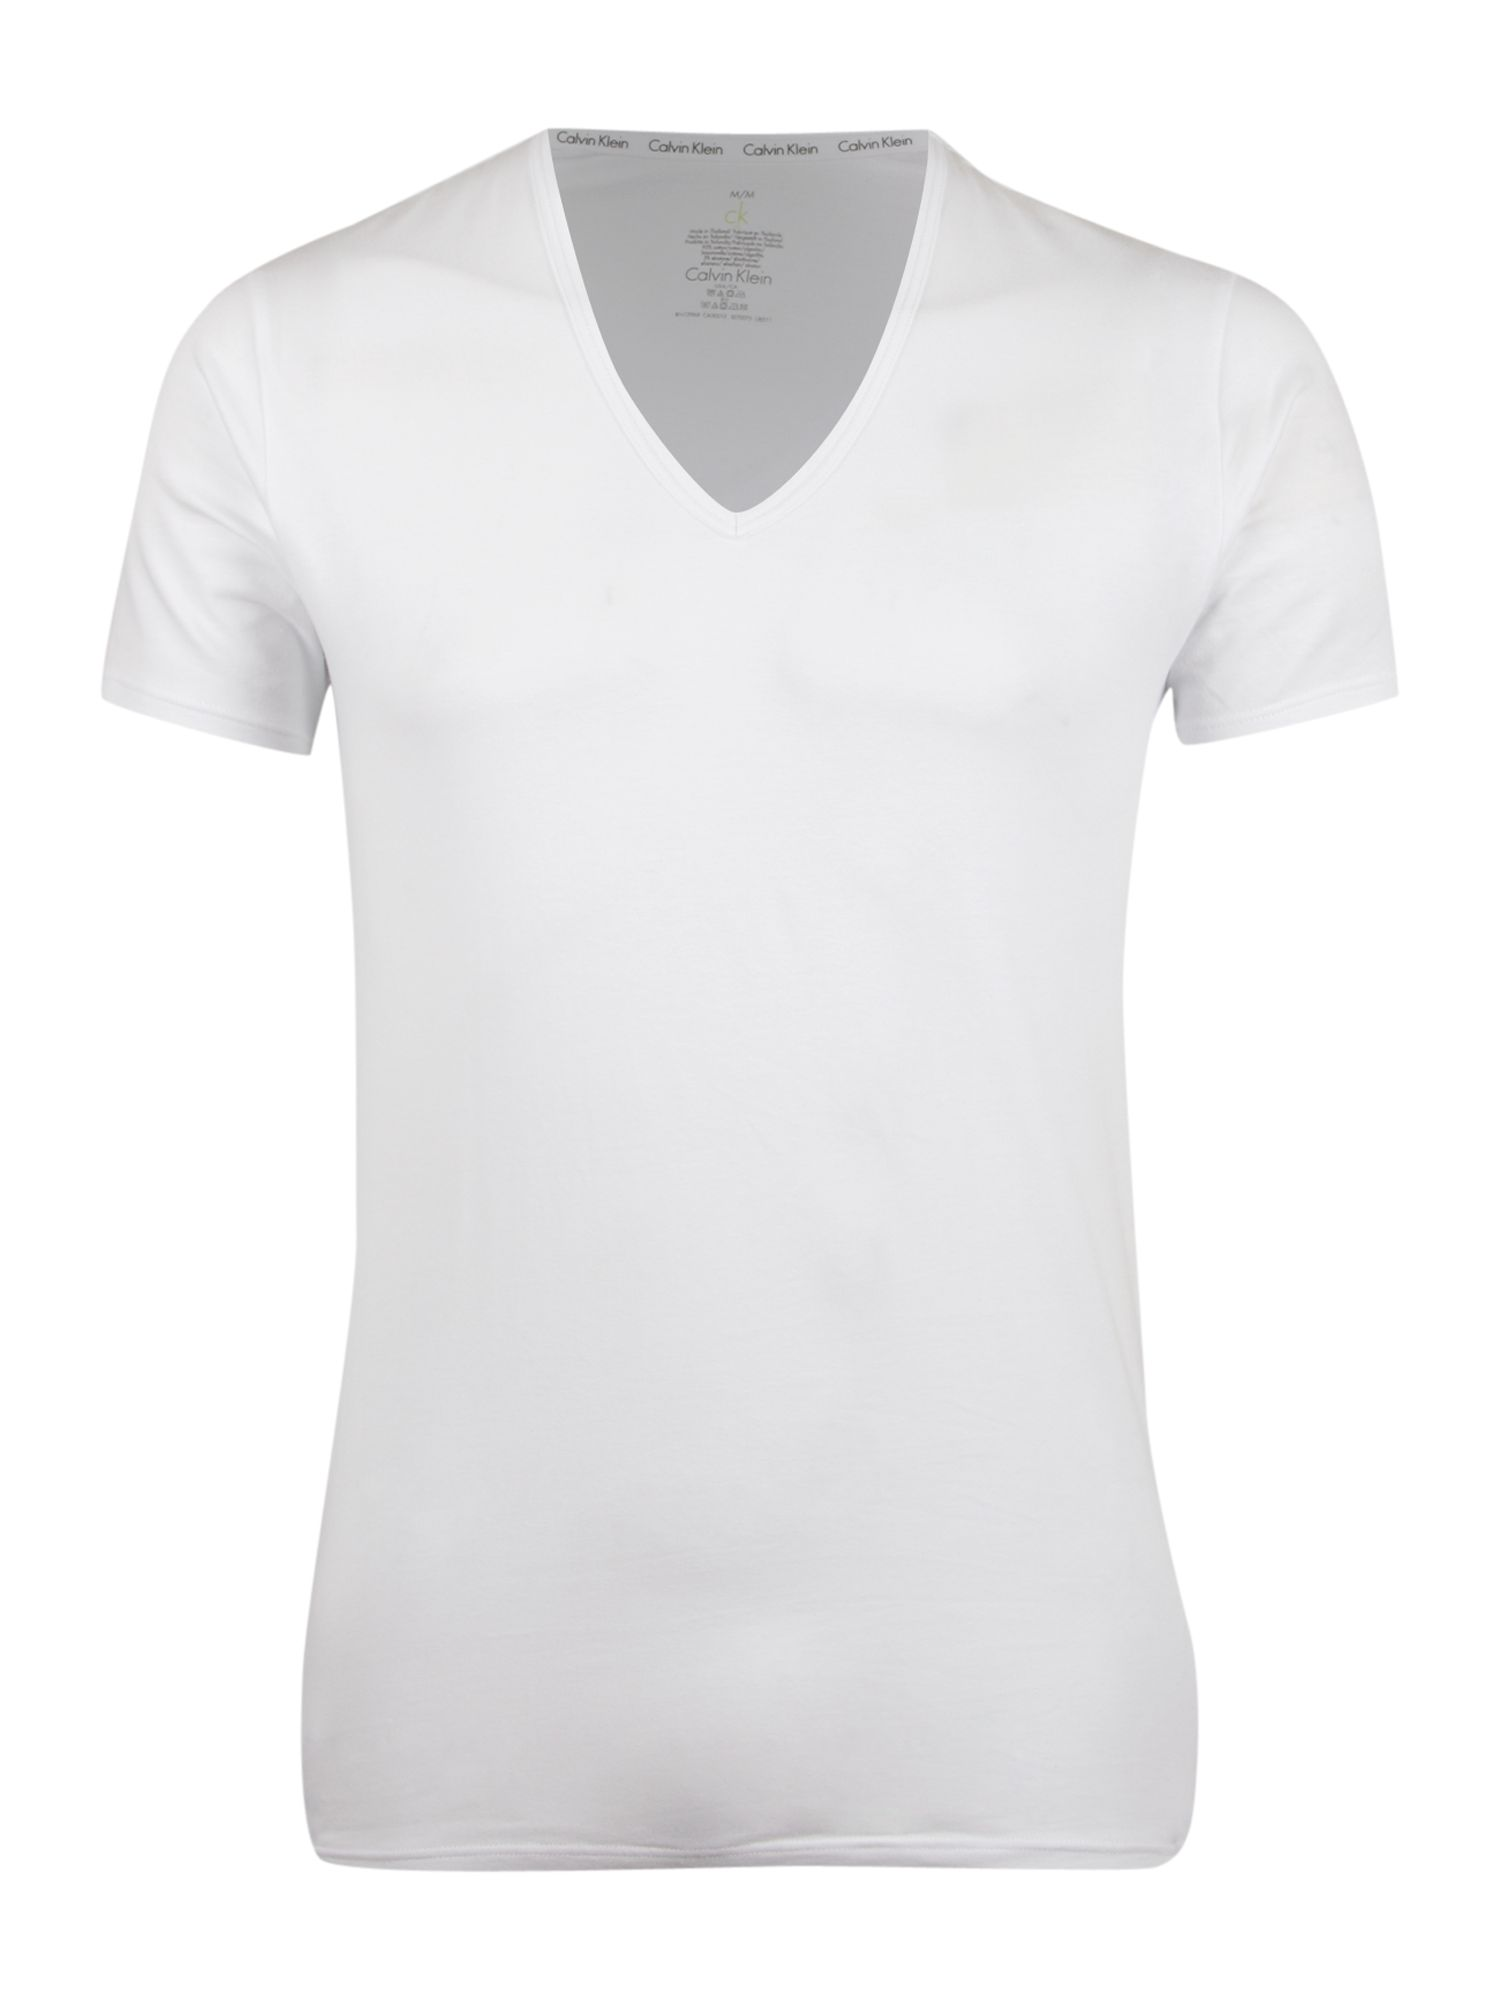 2 pack v-neck cotton T-shirt